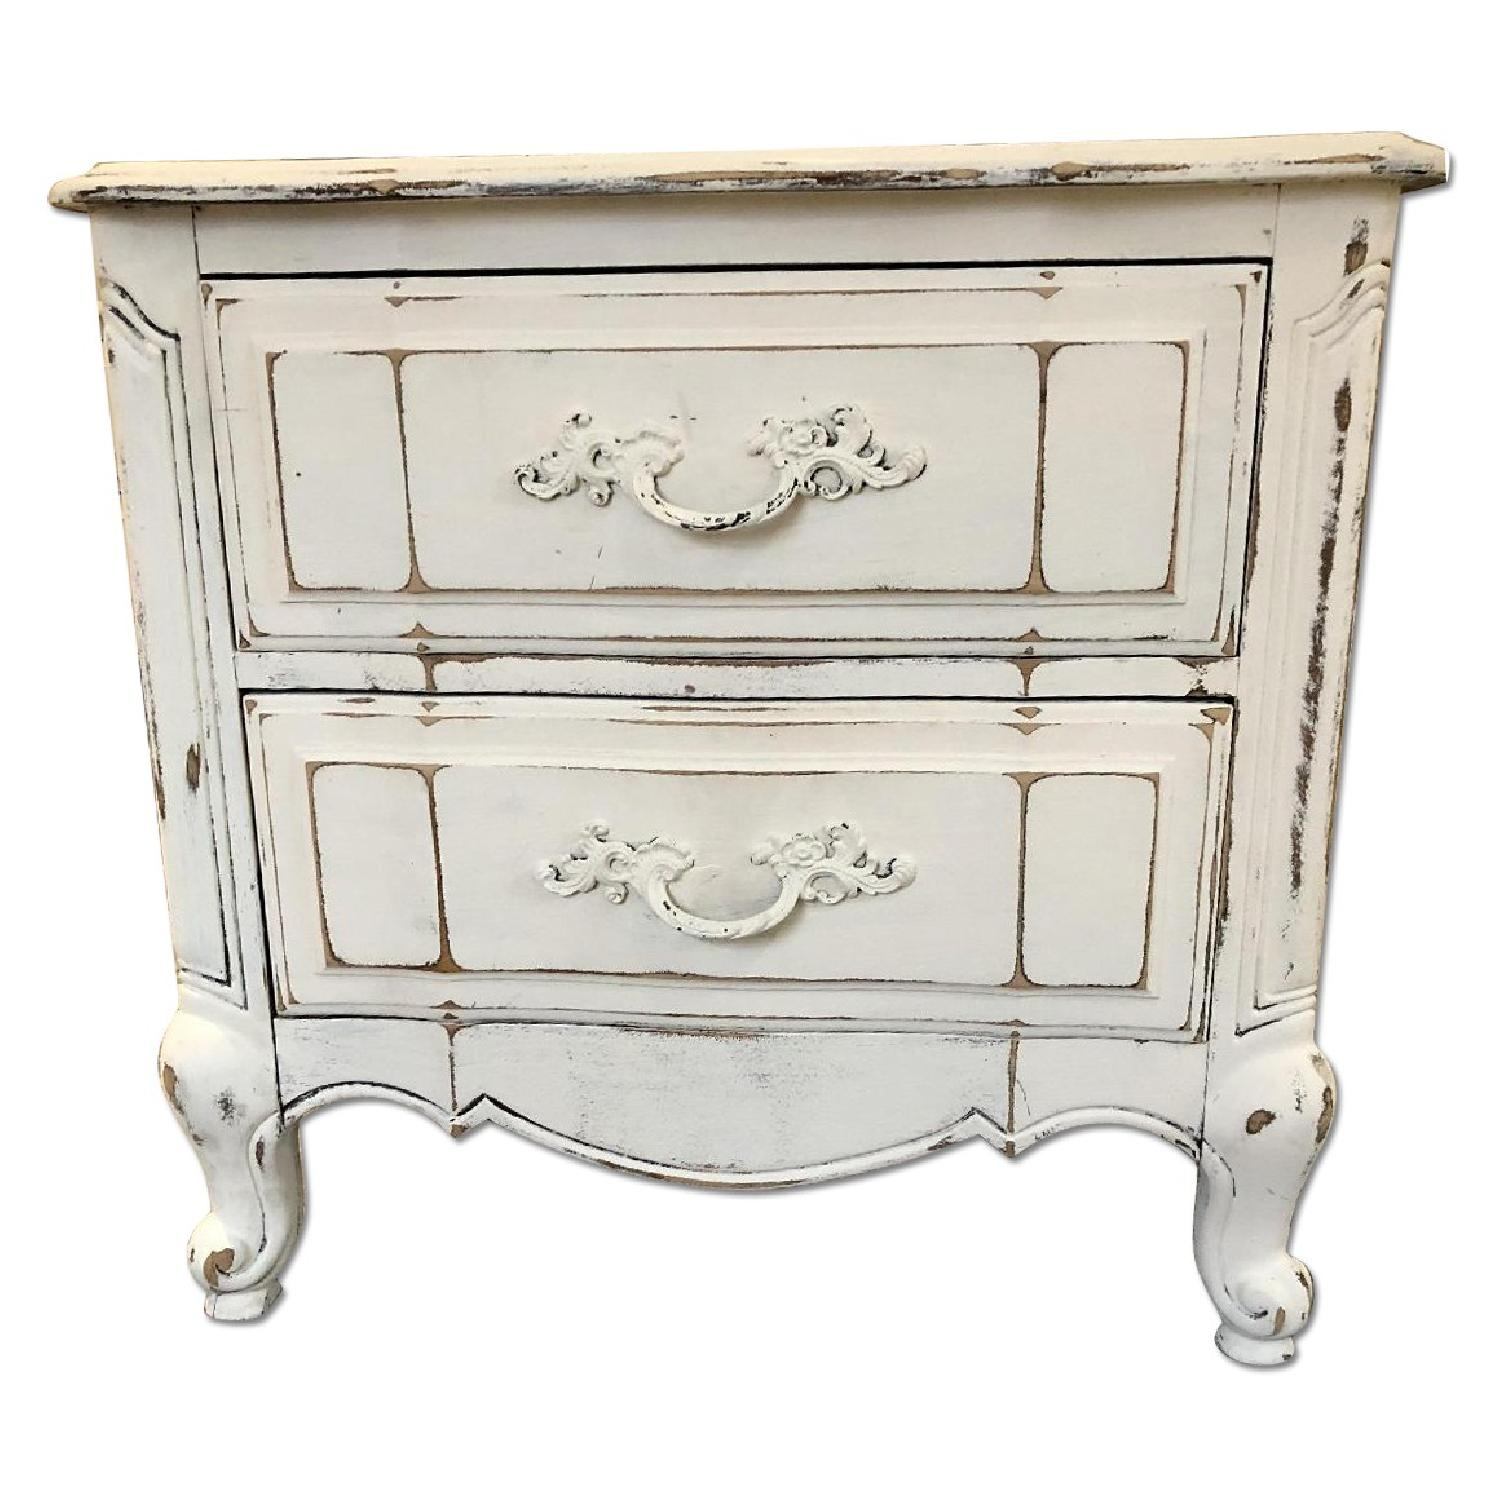 Refinished Rustic Antique Nightstand